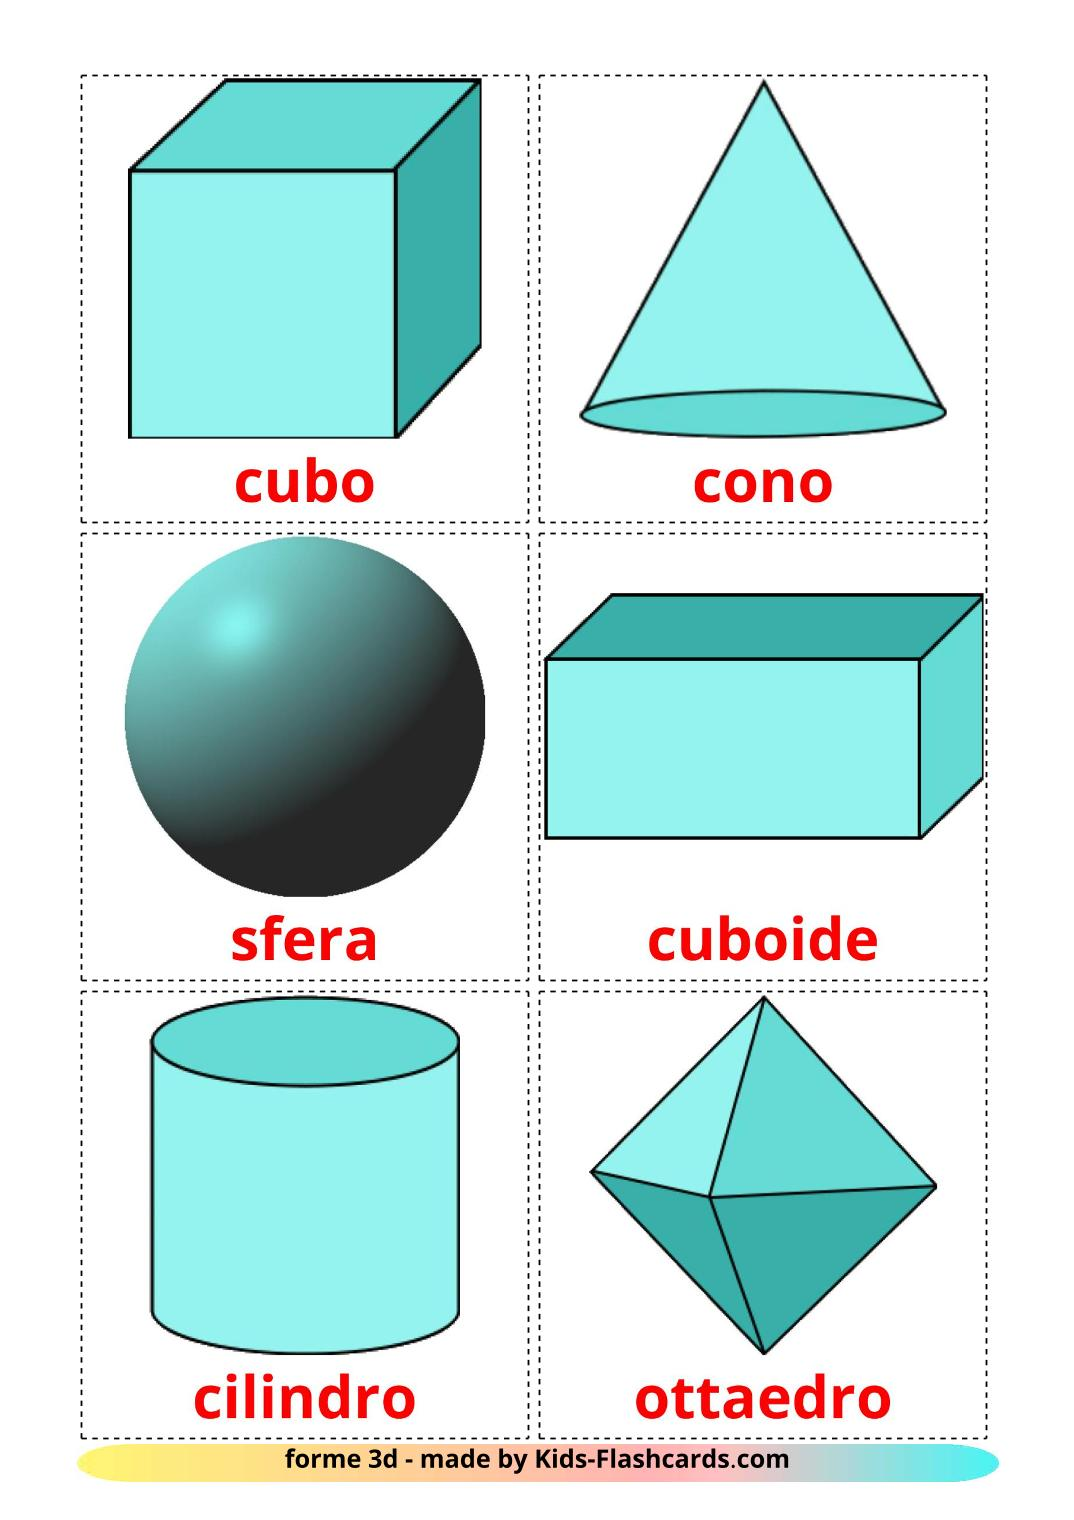 3D Shapes - 17 Free Printable italian Flashcards